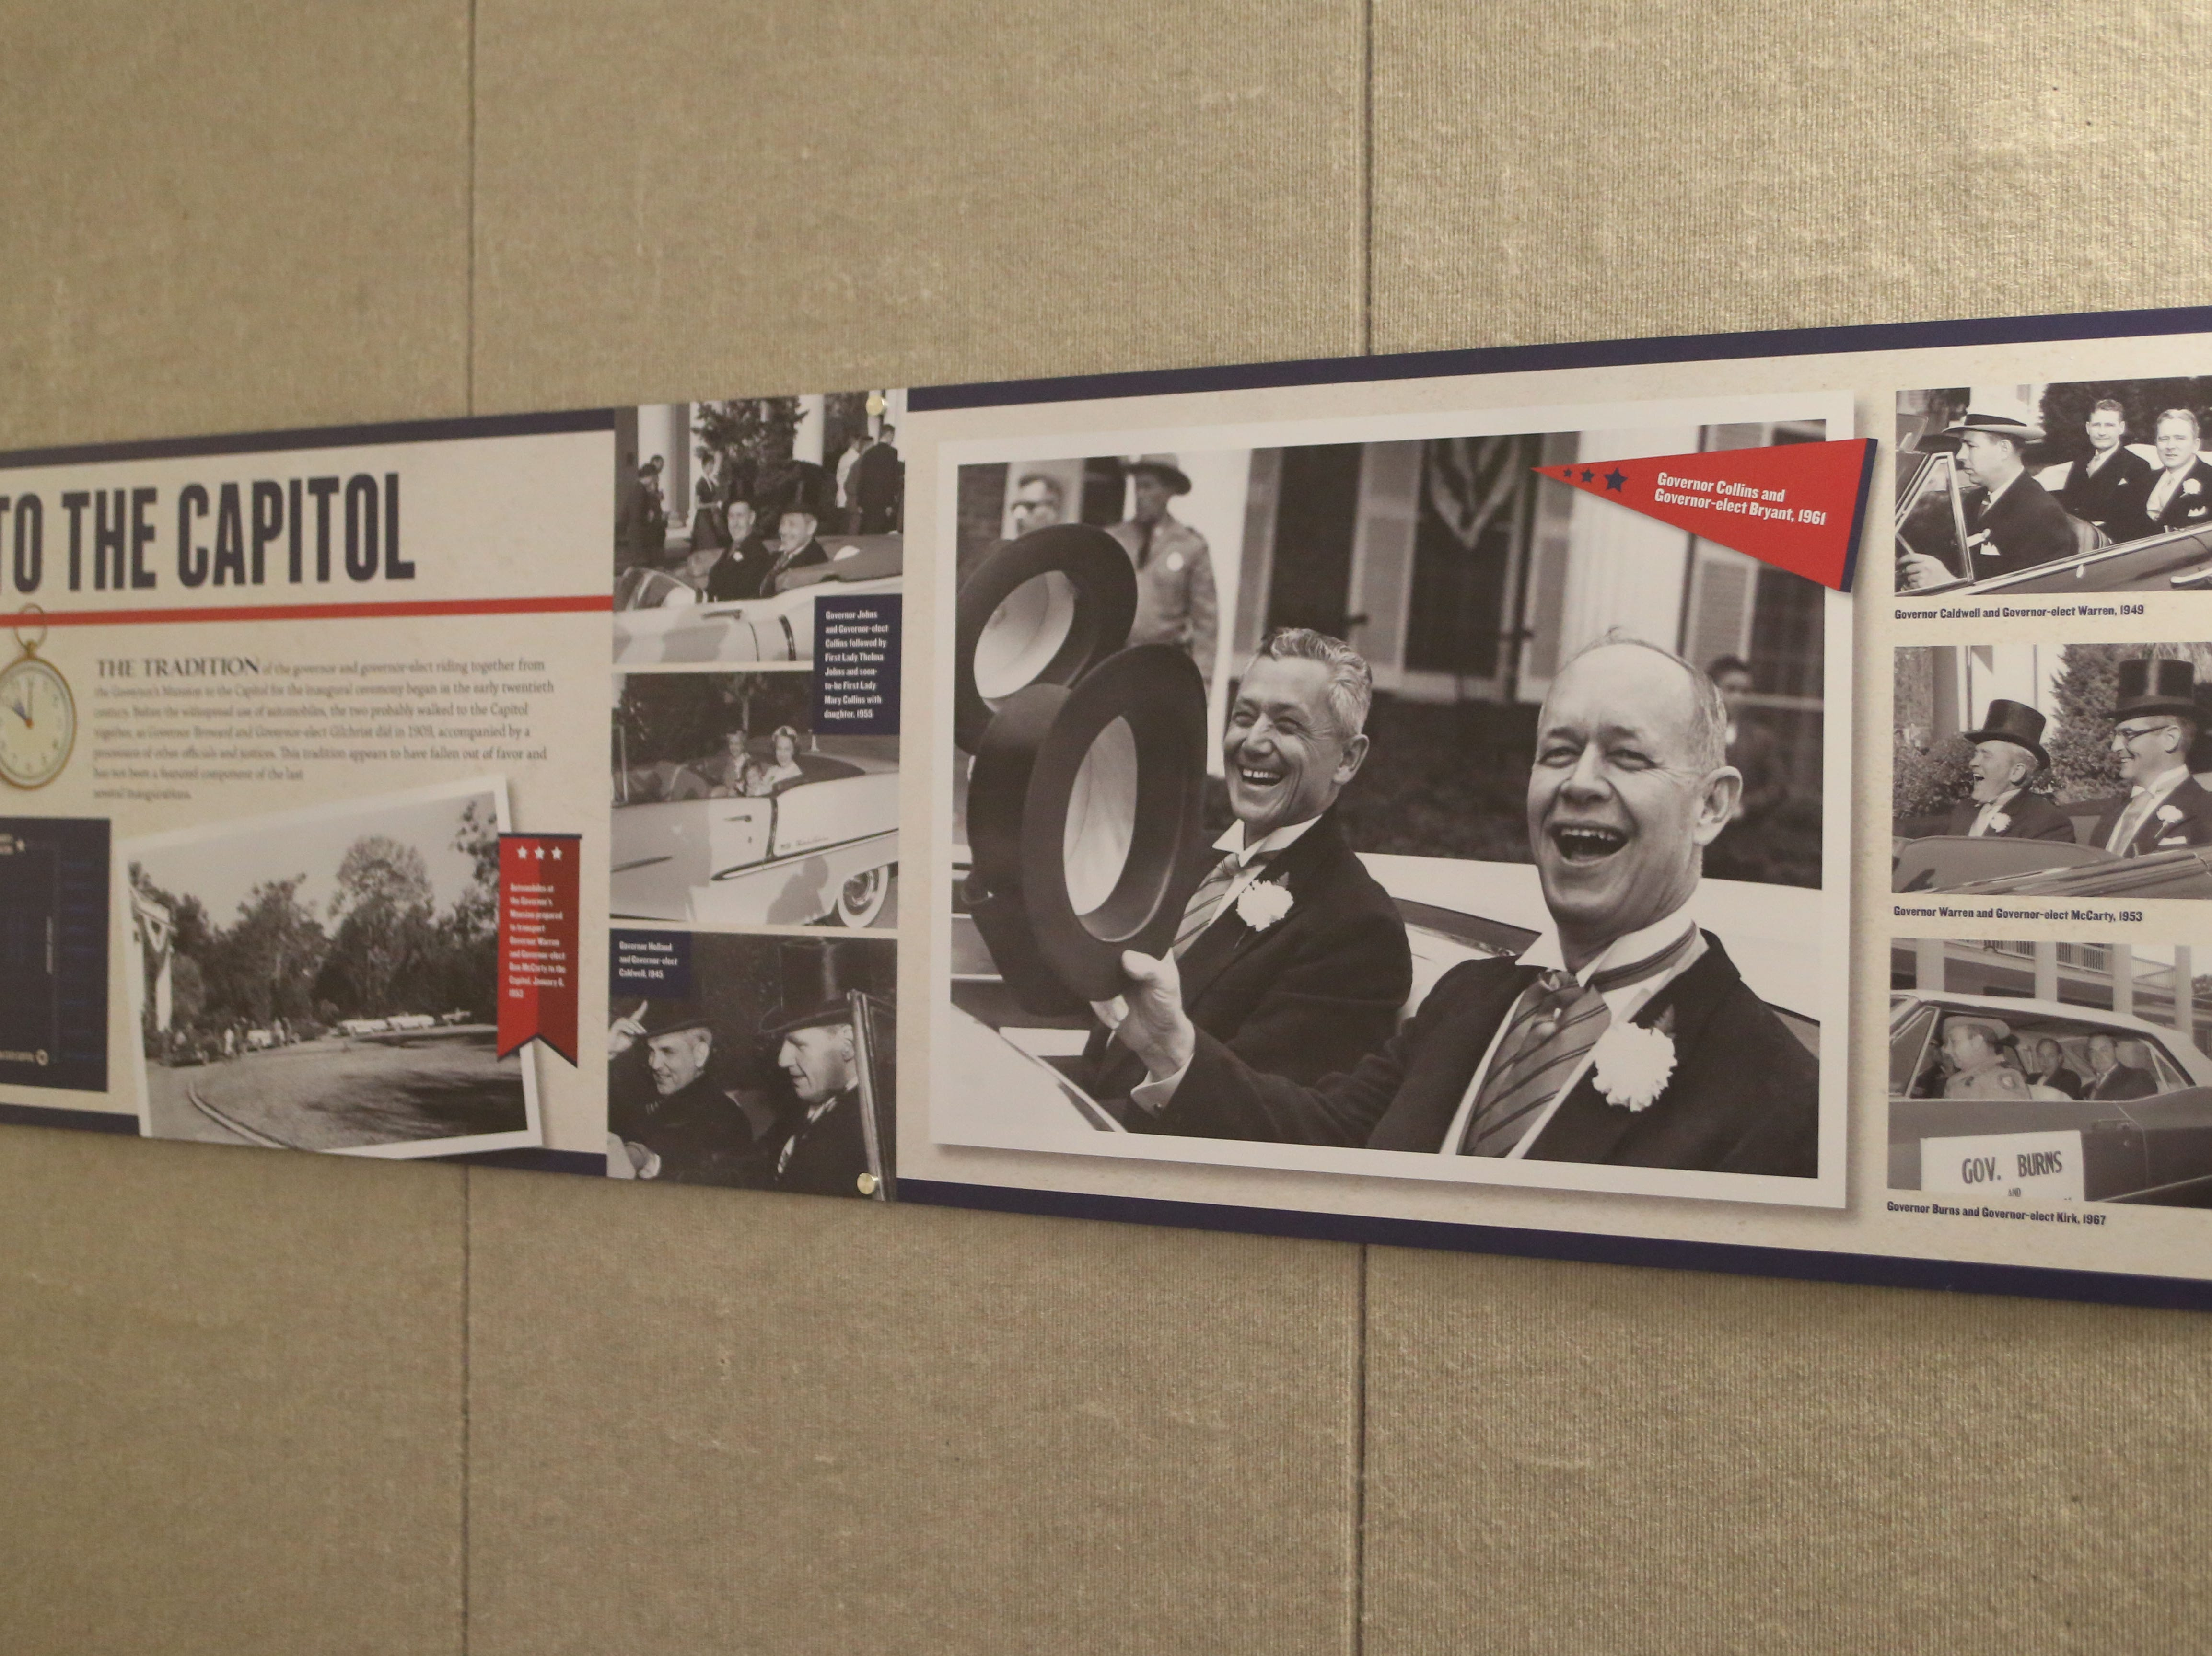 The Tallahassee historic Capitol hosts an exhibit on inaugurations of years past.